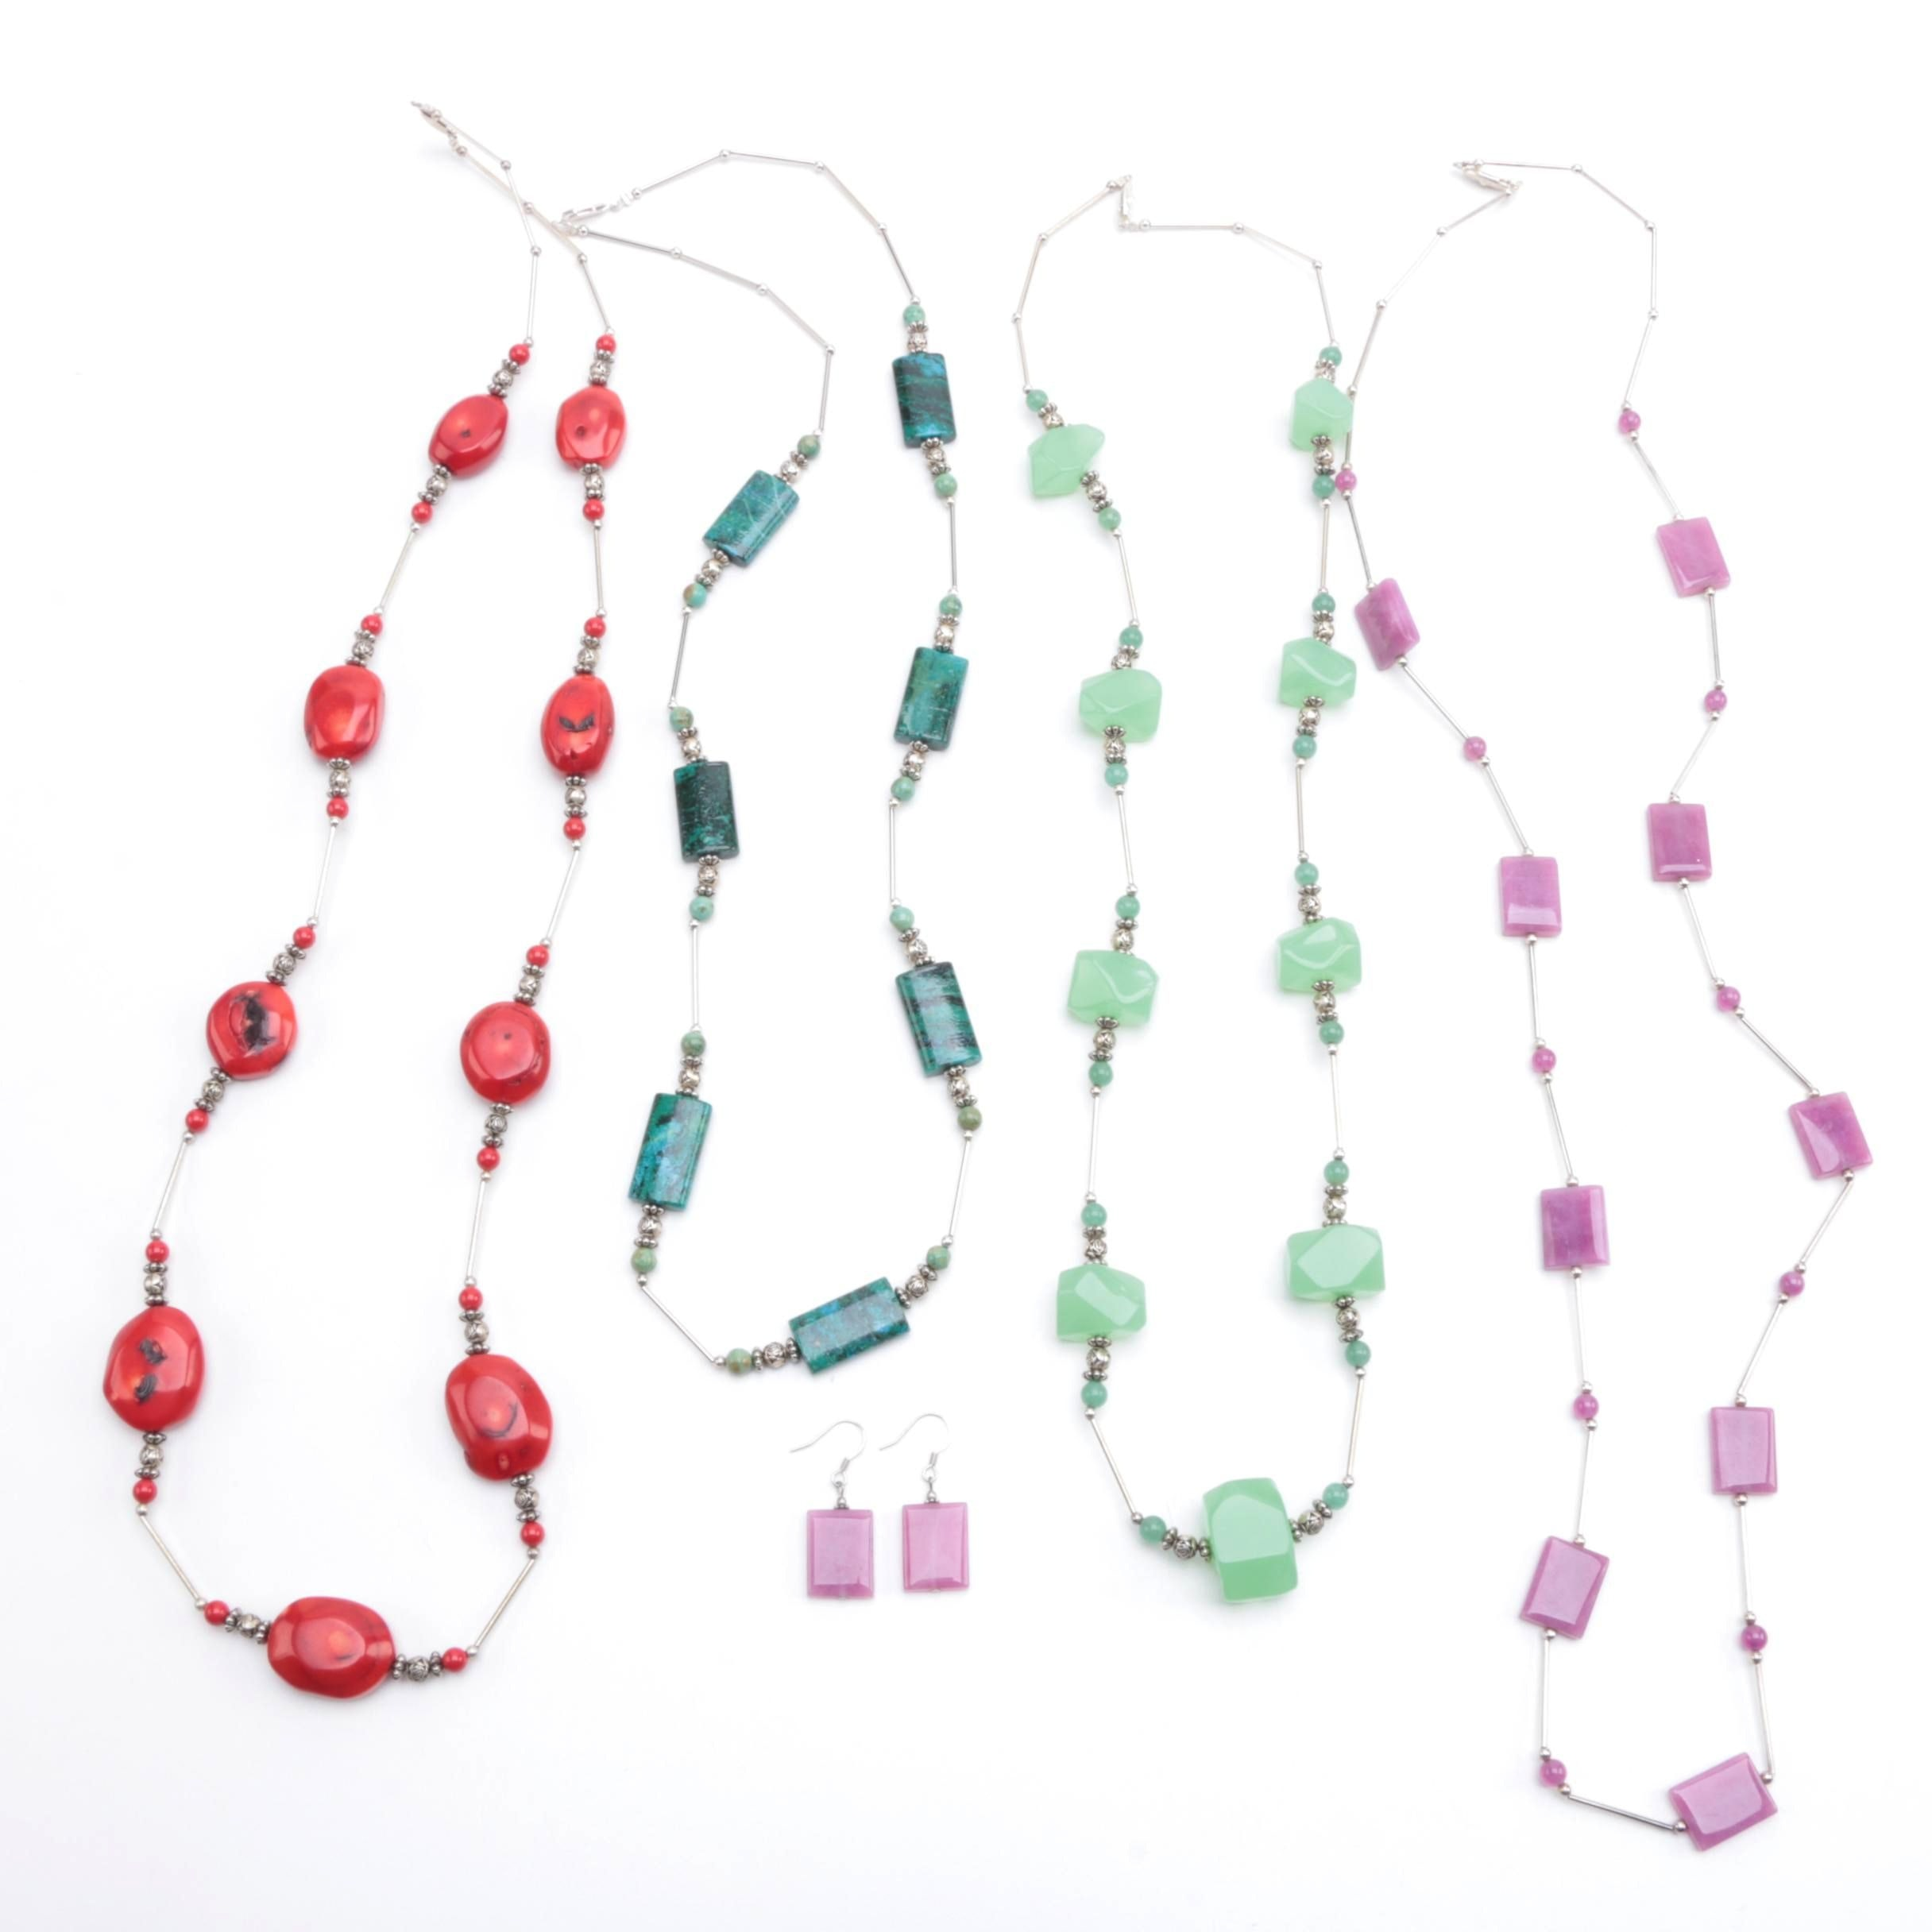 Assortment of Stone Necklaces Featuring Dyed Coral, Turquoise and Aventurine